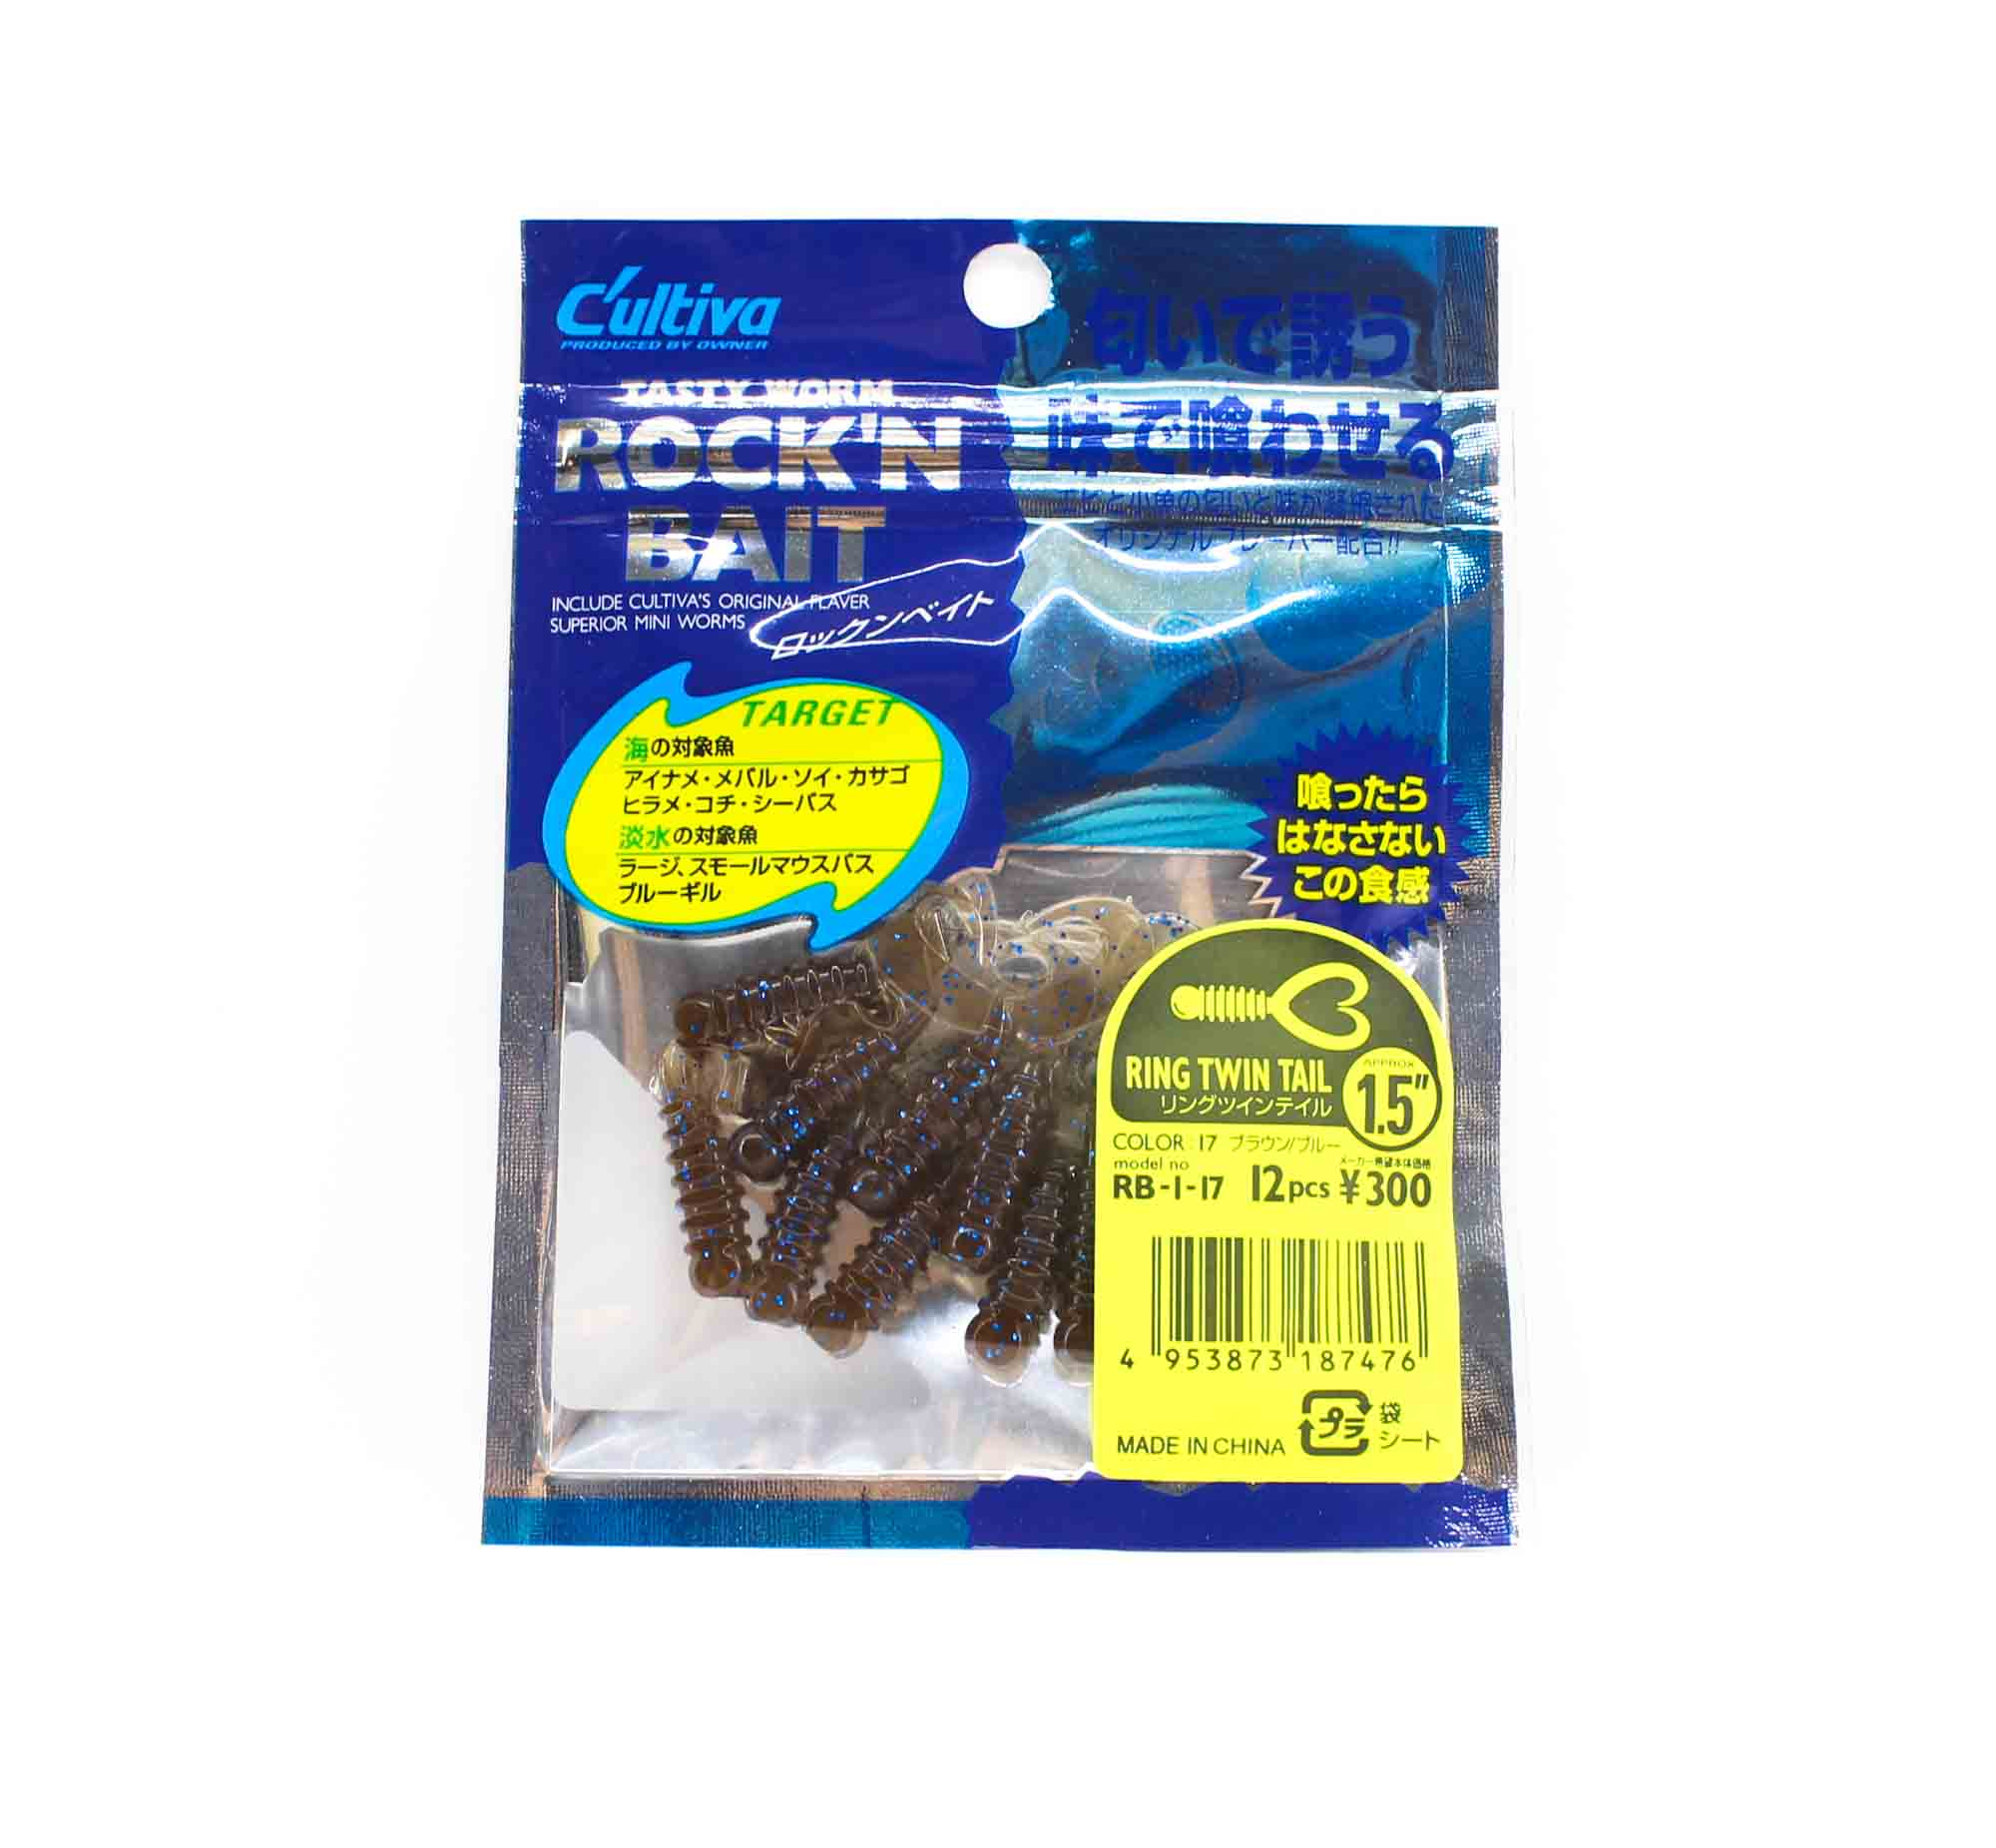 Owner Soft Lure RB-1 Ring Twin Tail 12 Pieces 1.5 Inches 17 (7476)